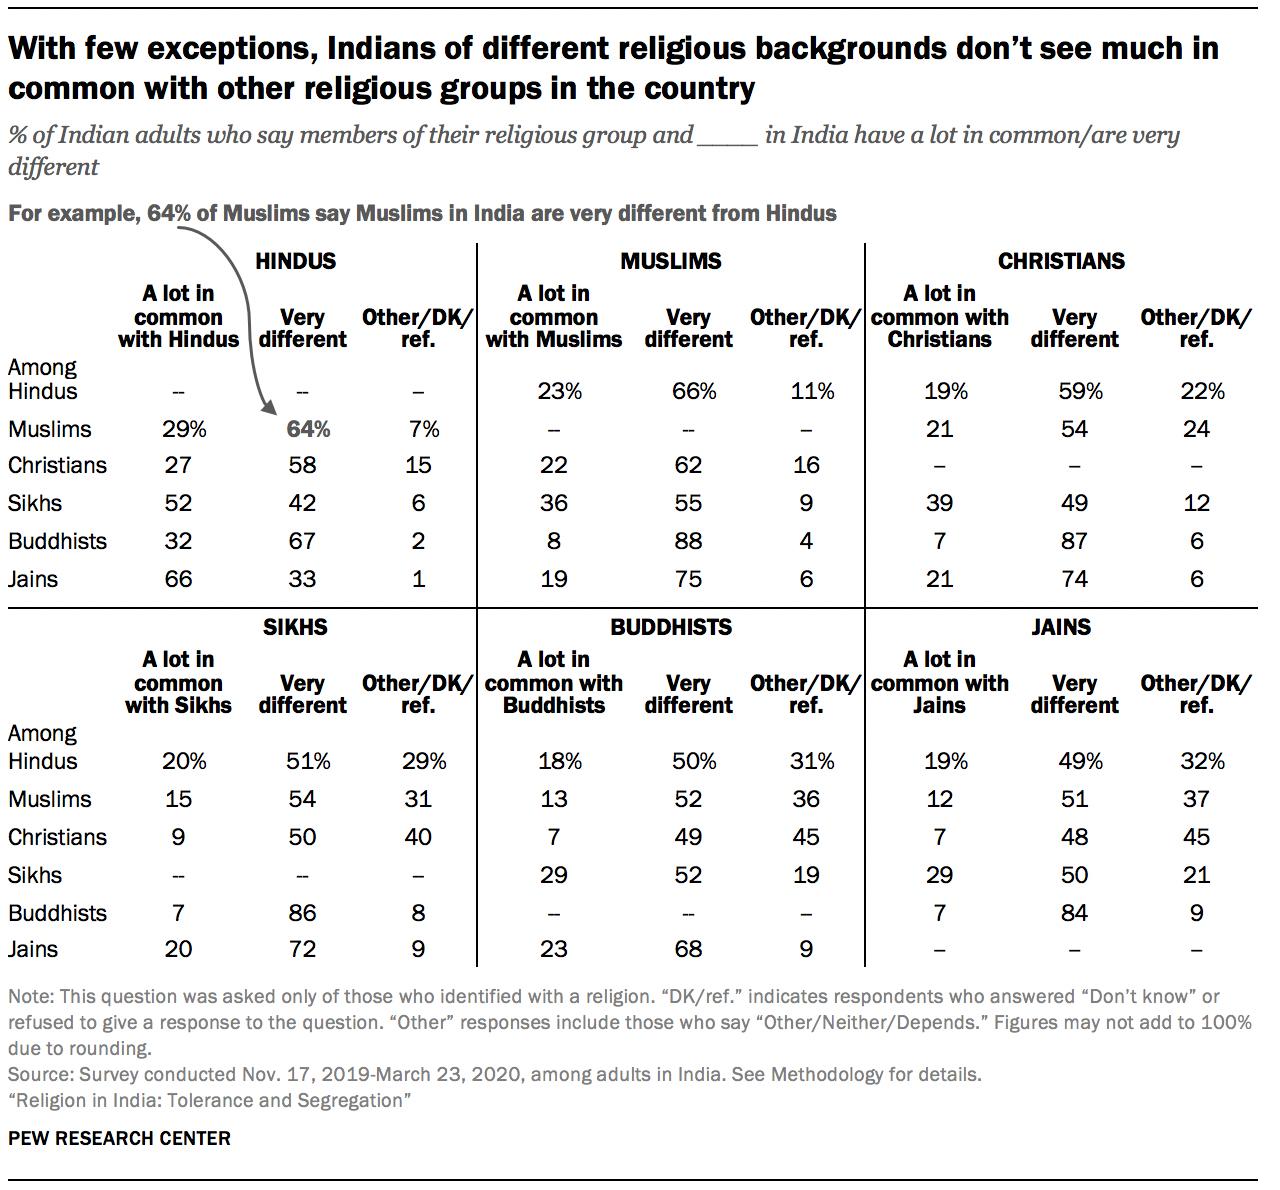 With few exceptions, Indians of different religious backgrounds don't see much in common with other religious groups in the country